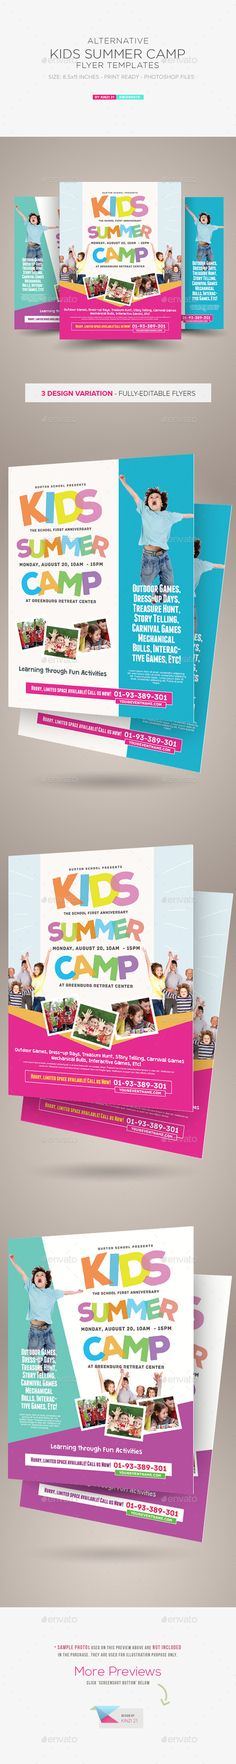 Kids Festival Flyer Brochures, Event flyers and Template - babysitting flyer template